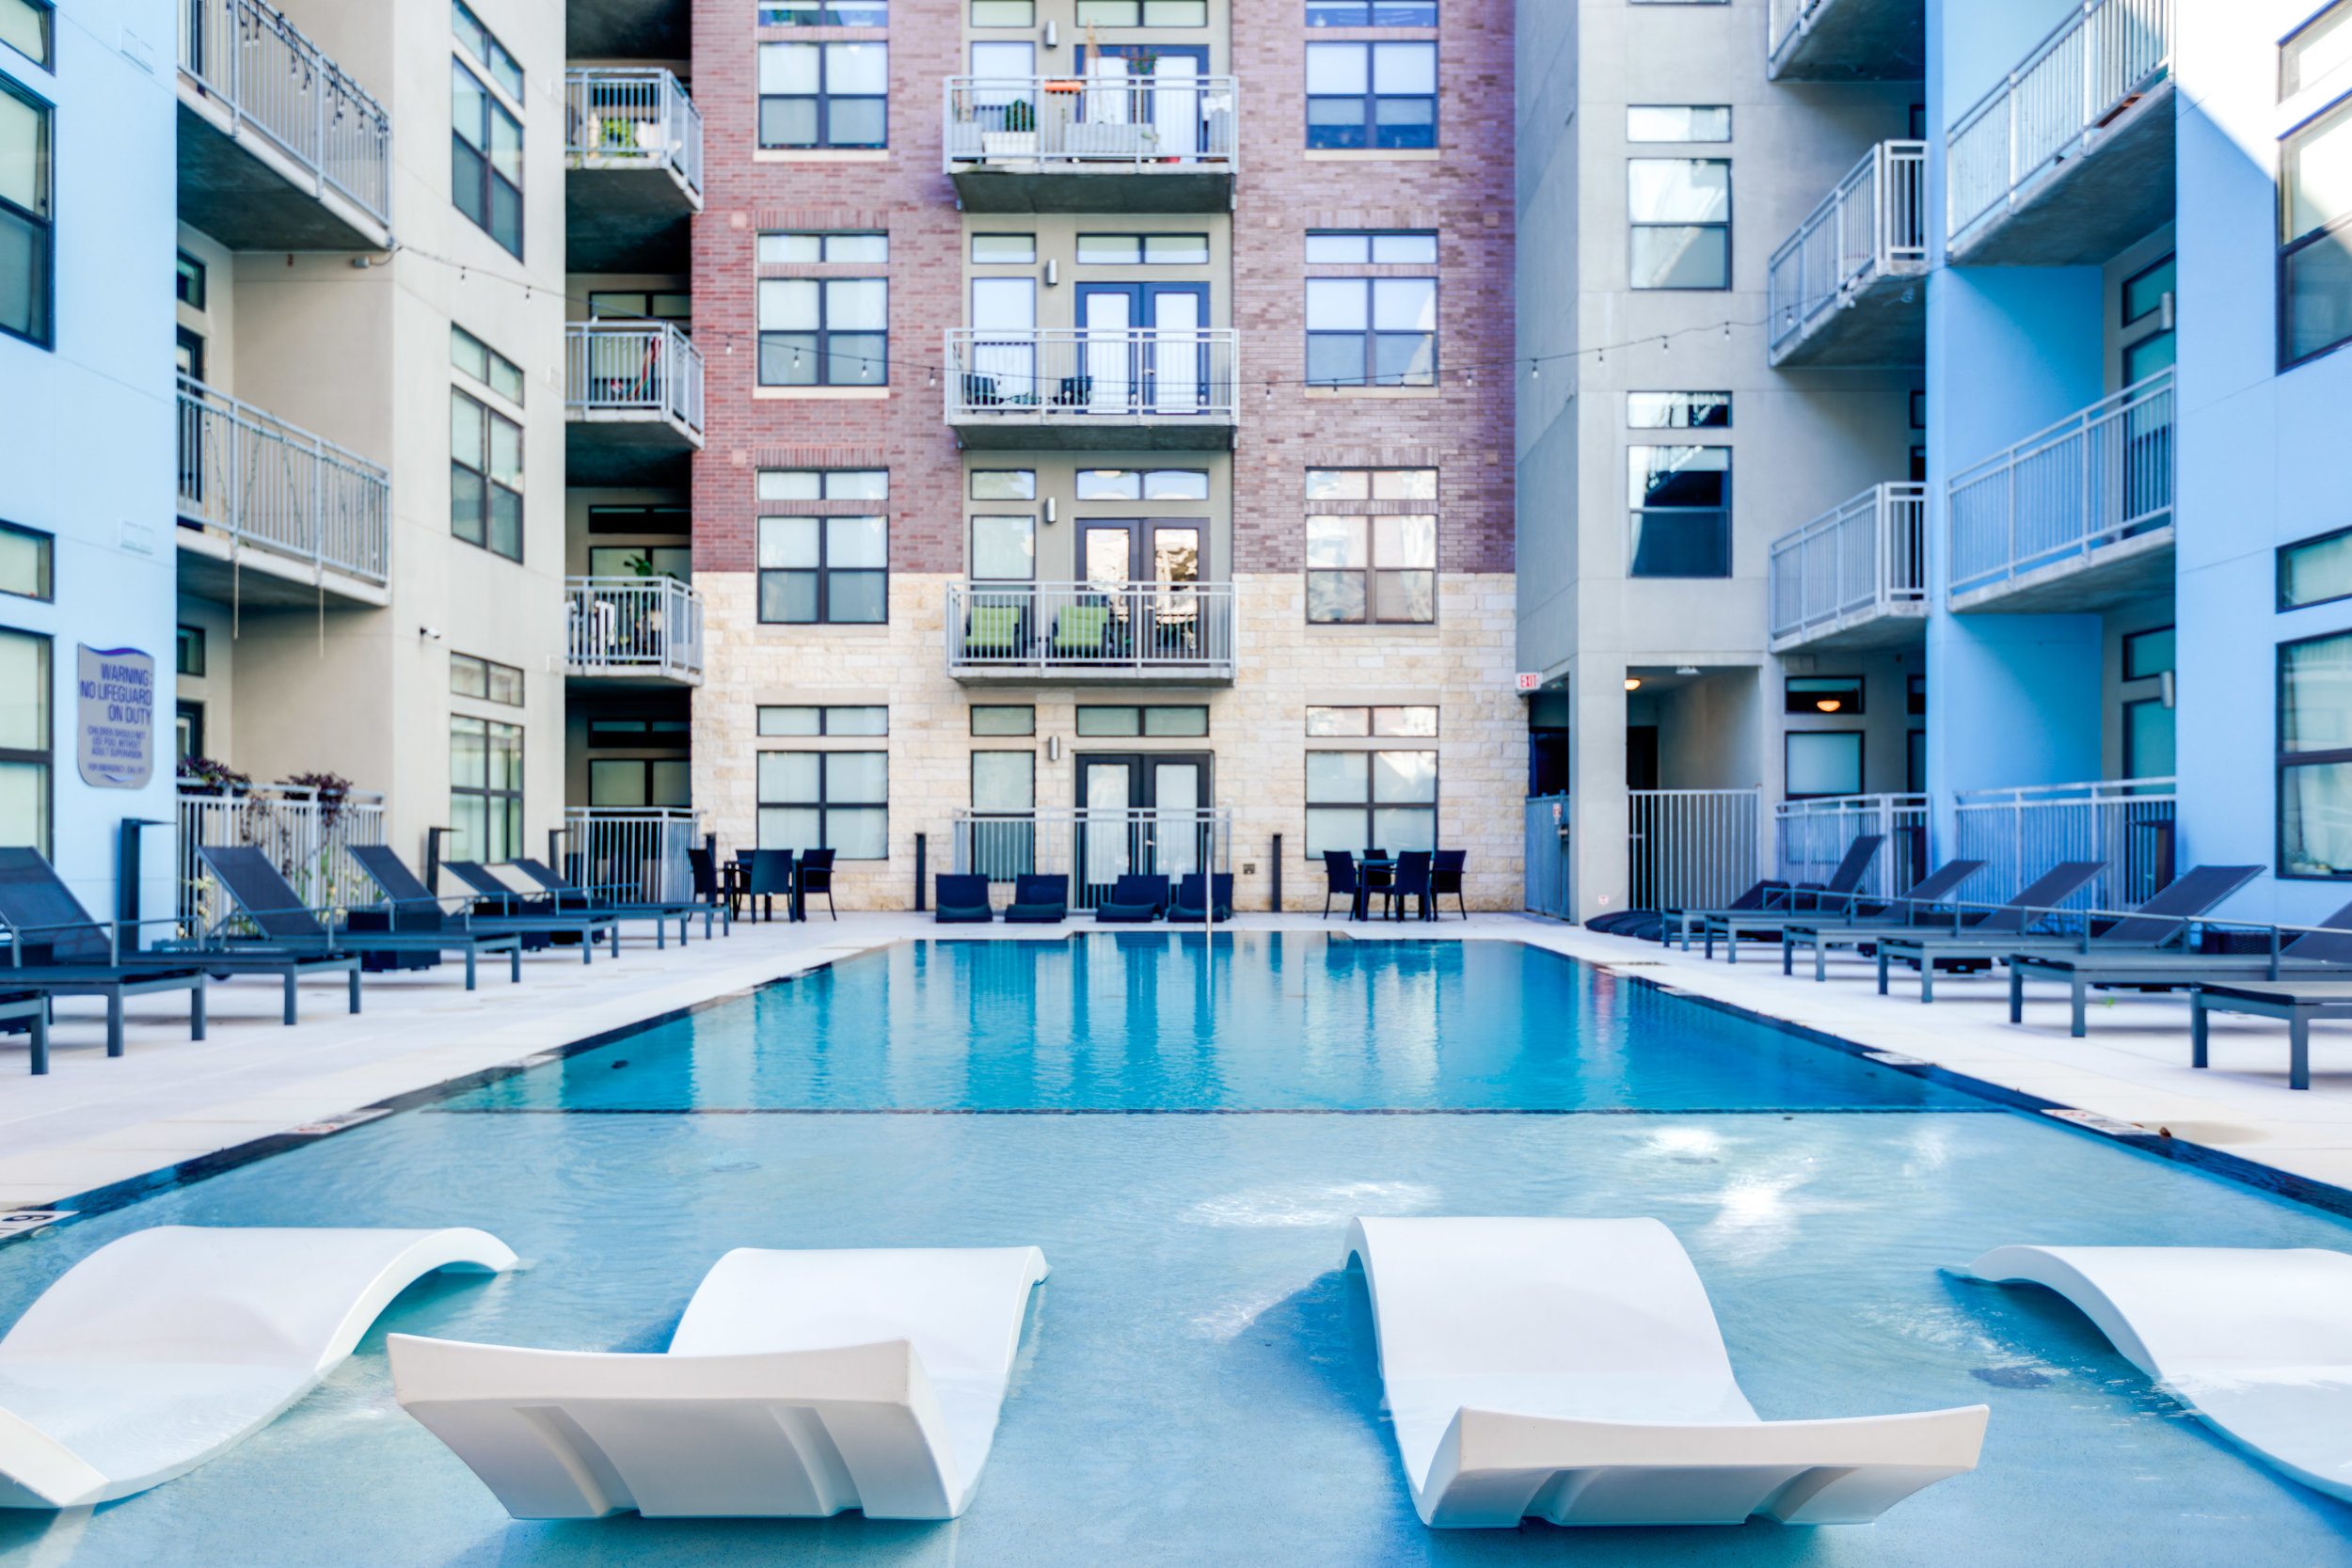 Coldwater - Austin, Texas (Interior Courtyard & Pool)